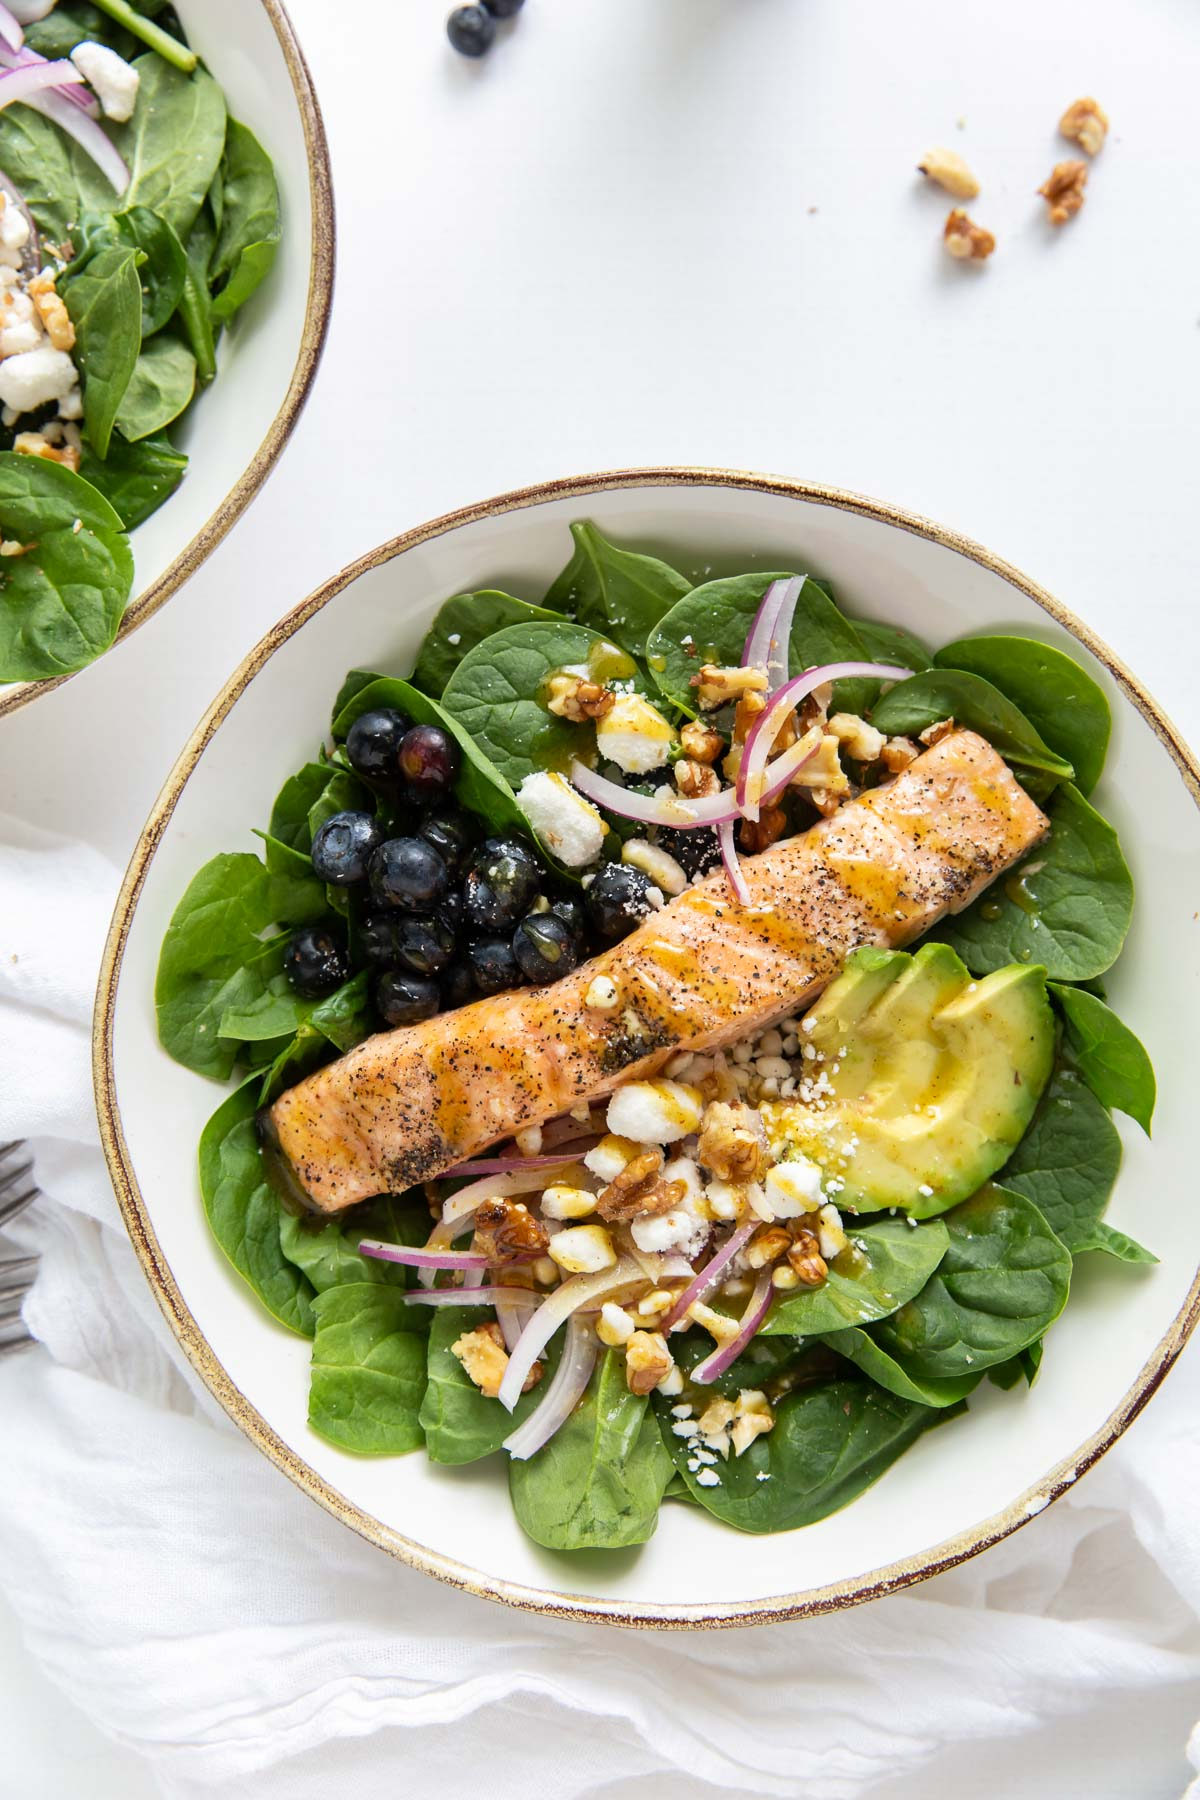 salmon salad with spinach and avocado served in a bowl and drizzled with honey mustard dressing